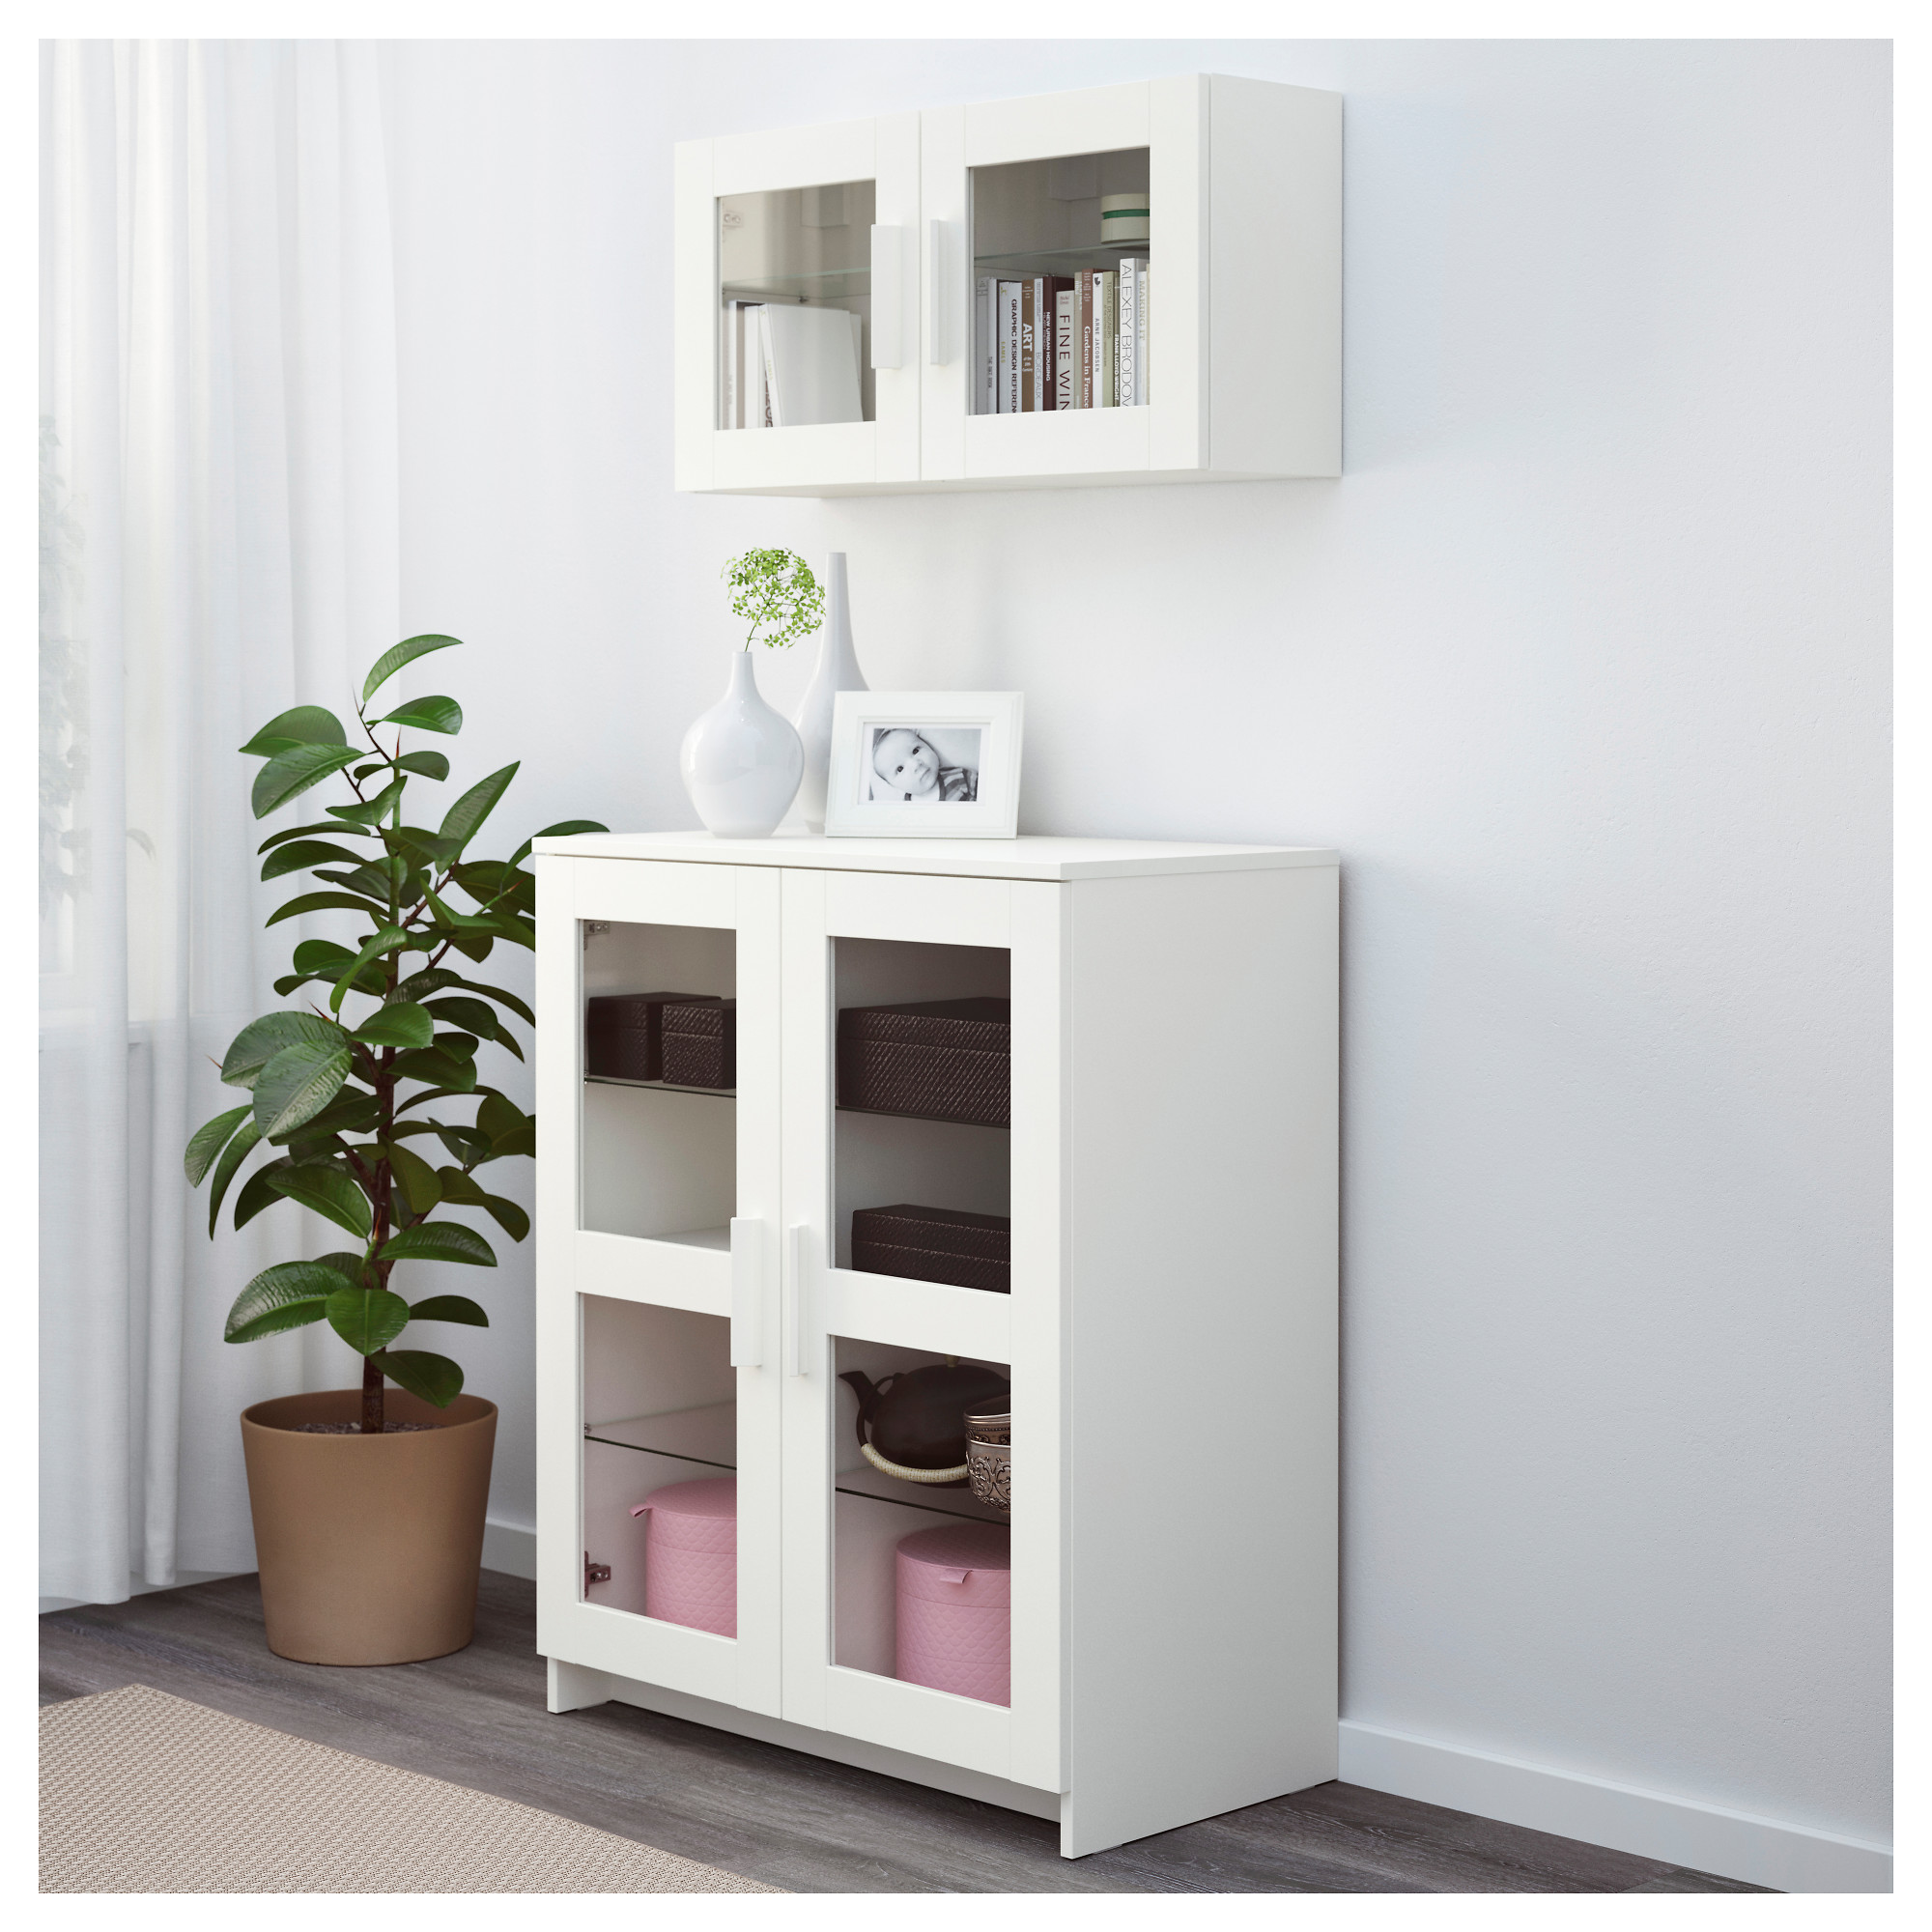 BRIMNES Cabinet With Doors   Glass/white   IKEA